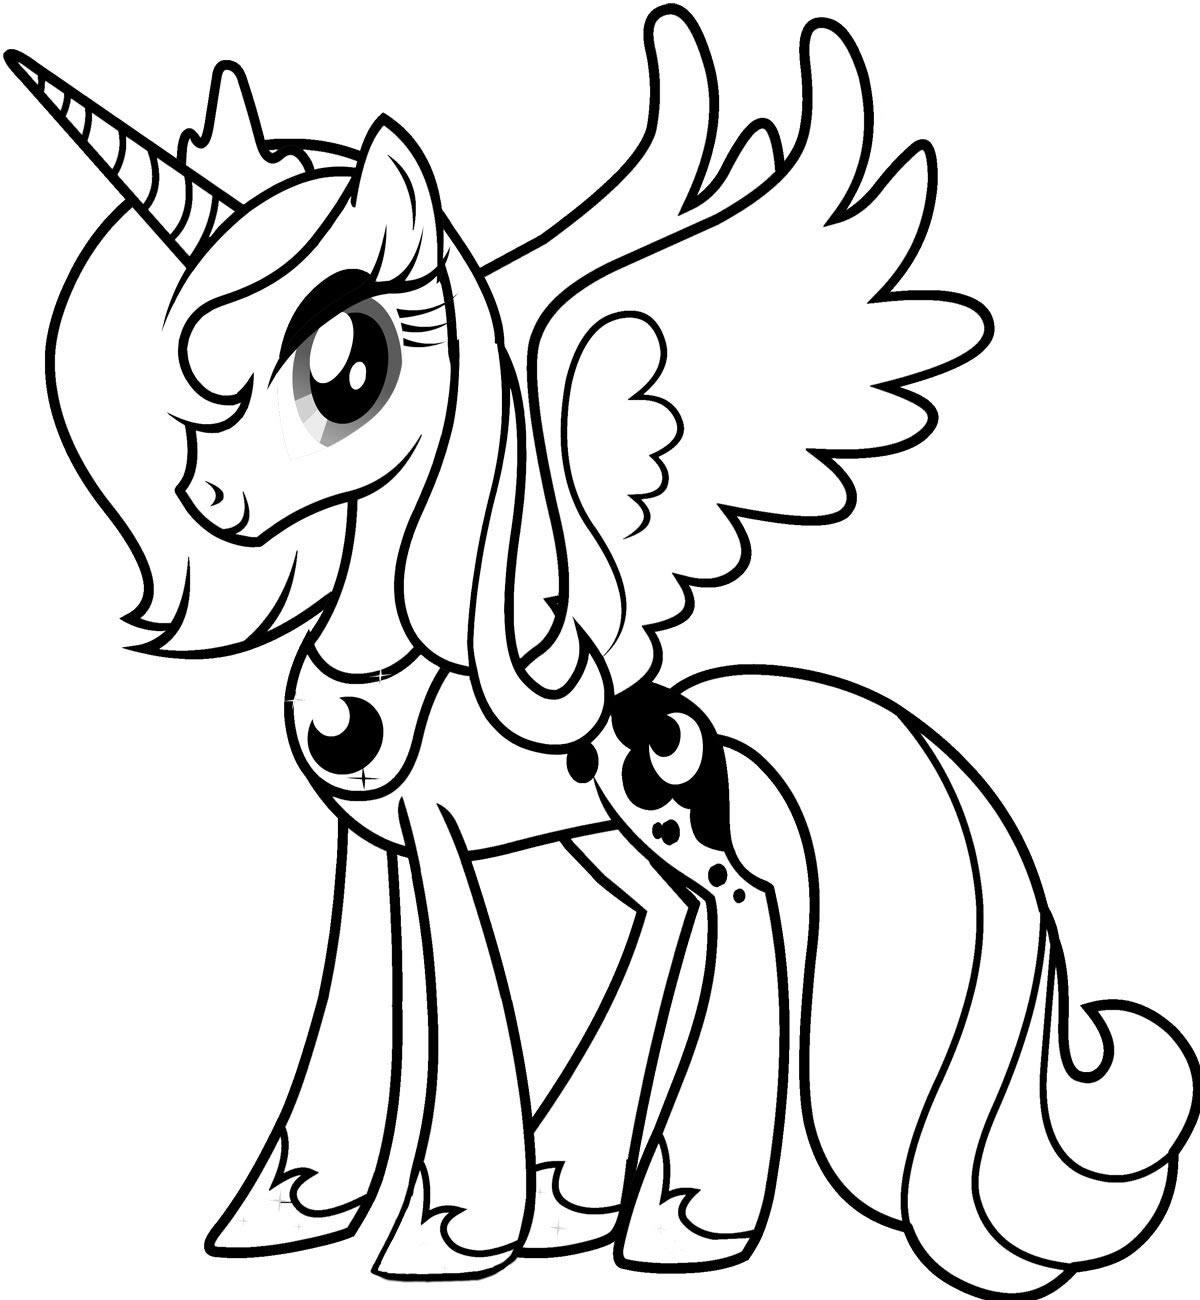 Mlp Coloring Pages Free Printable My Little Pony Coloring Pages For Kids